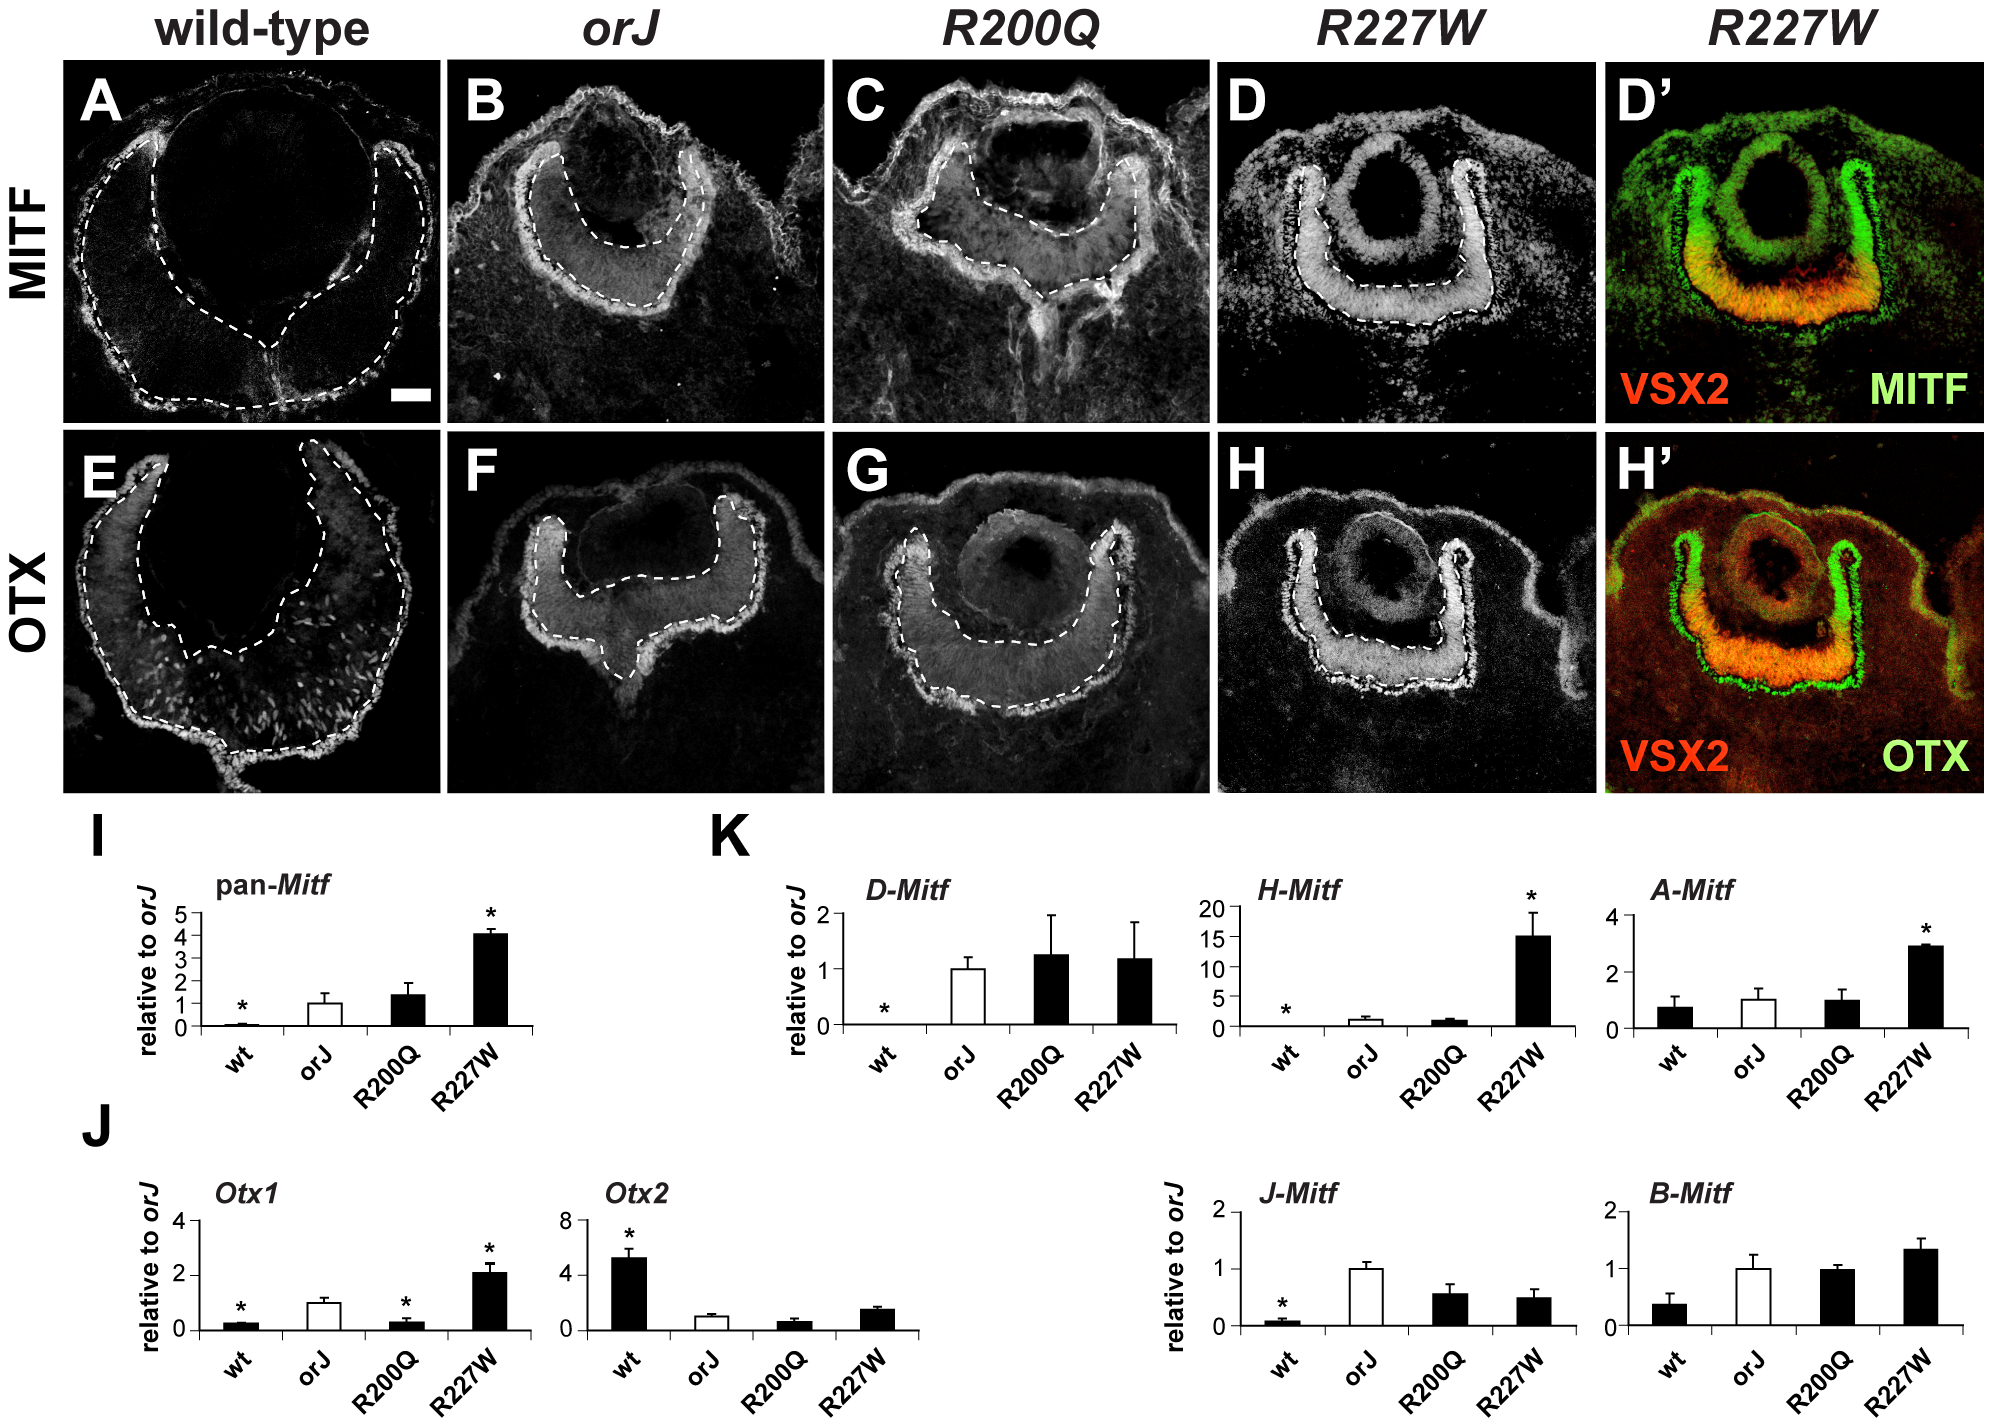 Phenotypic severity correlates with the expression levels of Mitf and Otx1.